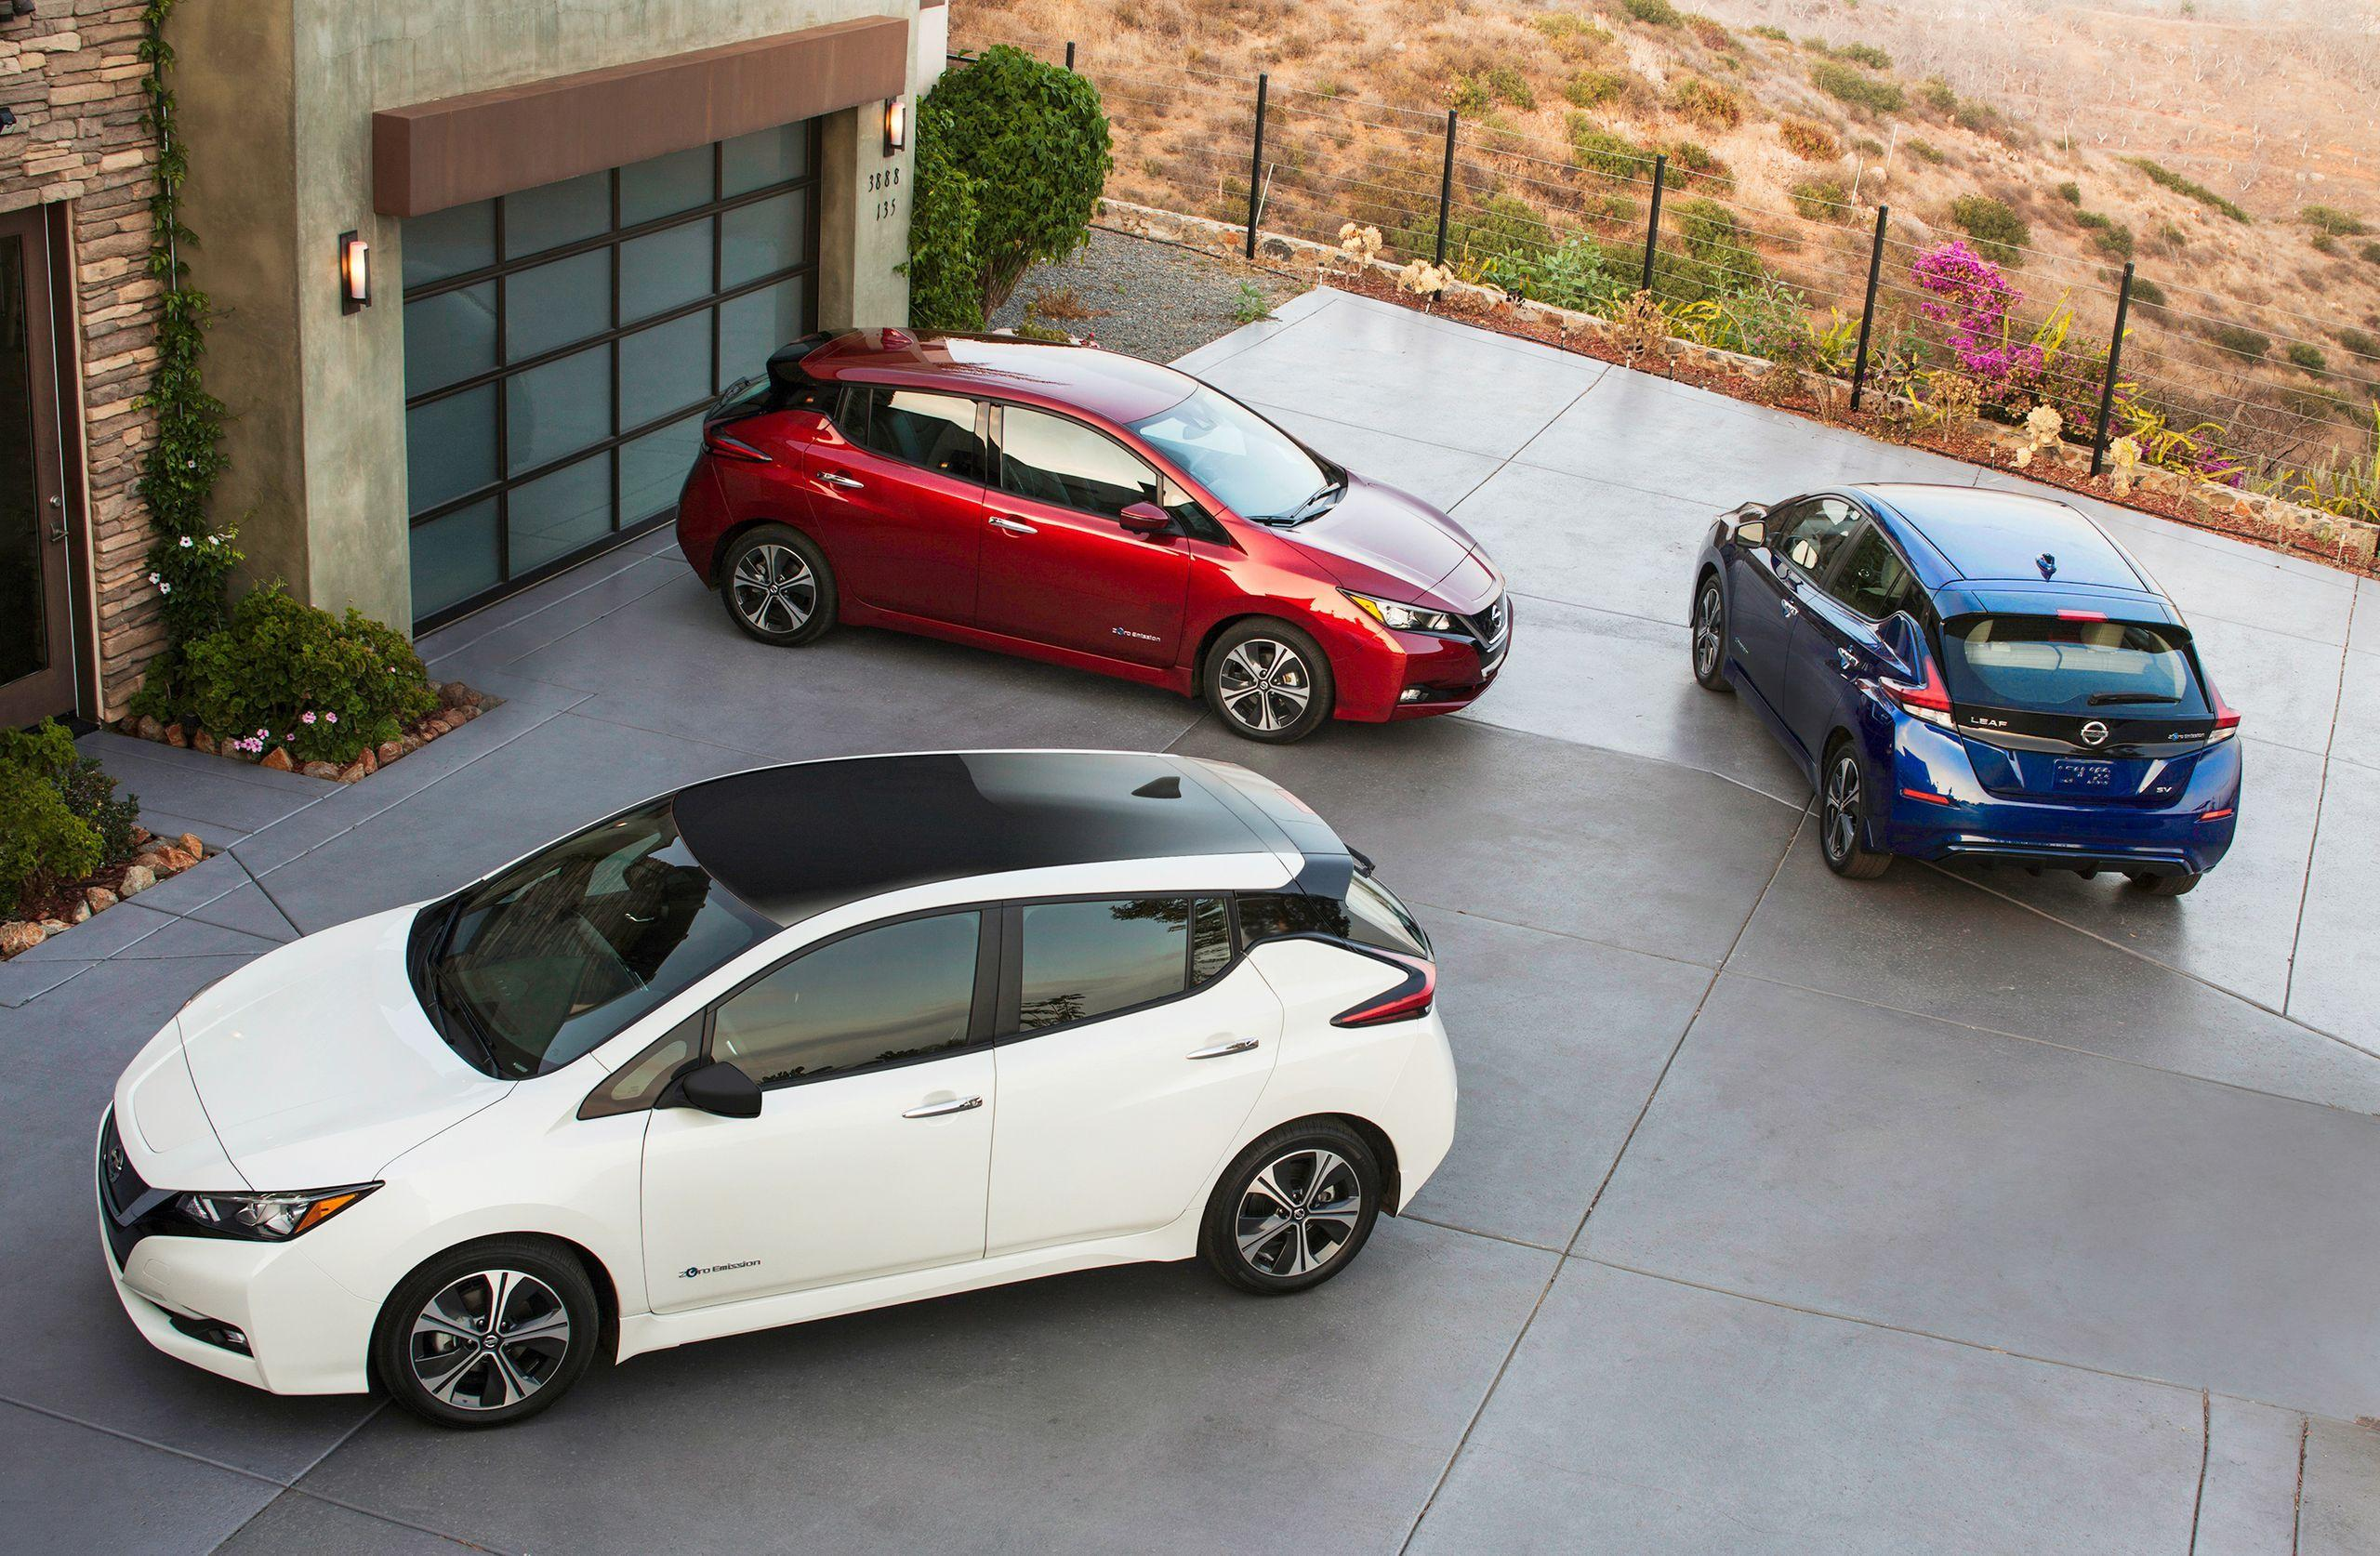 2018 Nissan LEAF Wallpaper Galore: Own It In January, On Your ...